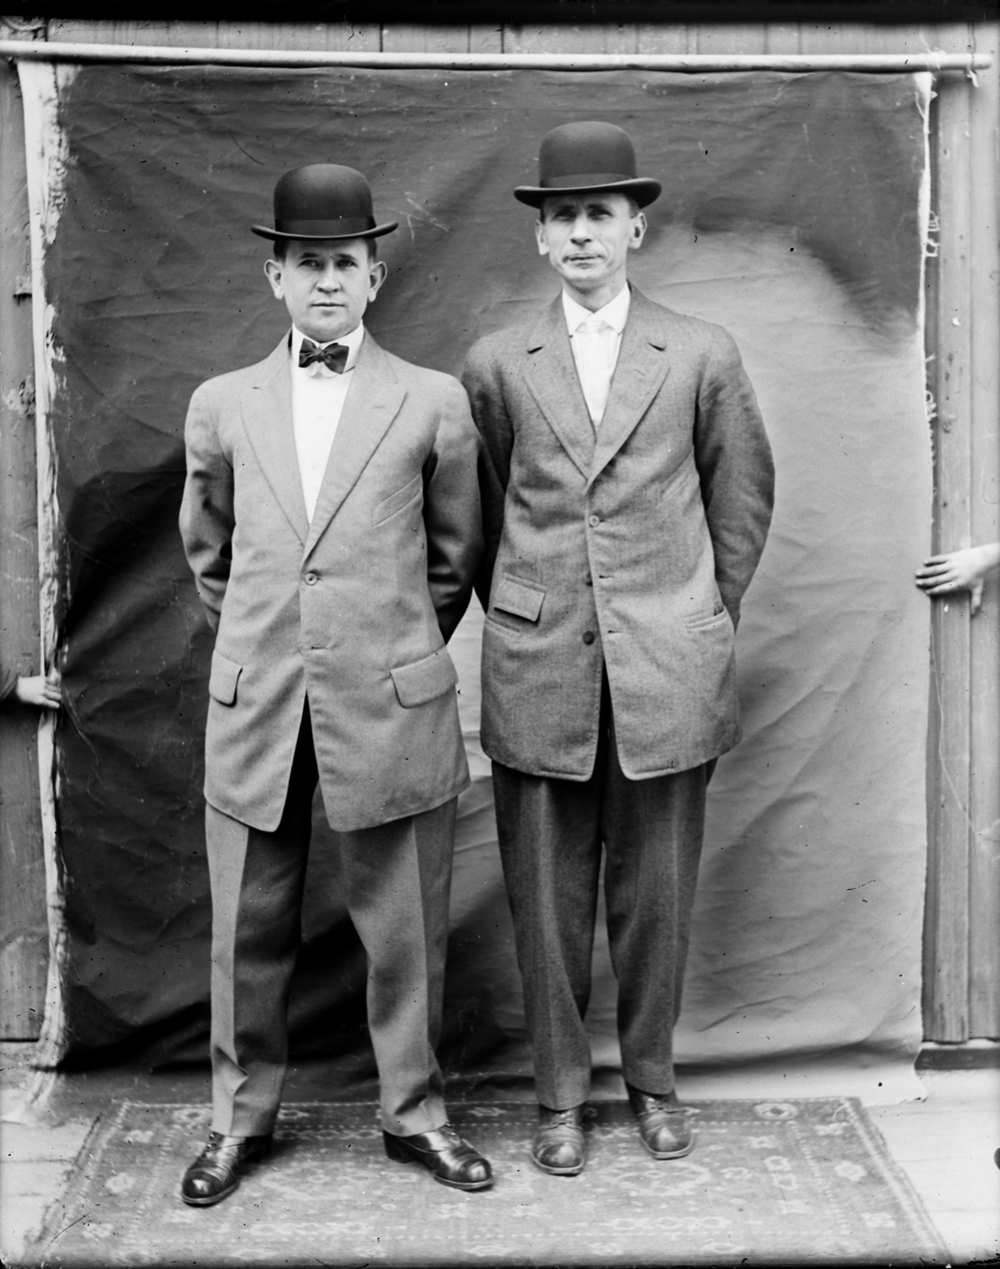 Dapper Gents, circa 1915.